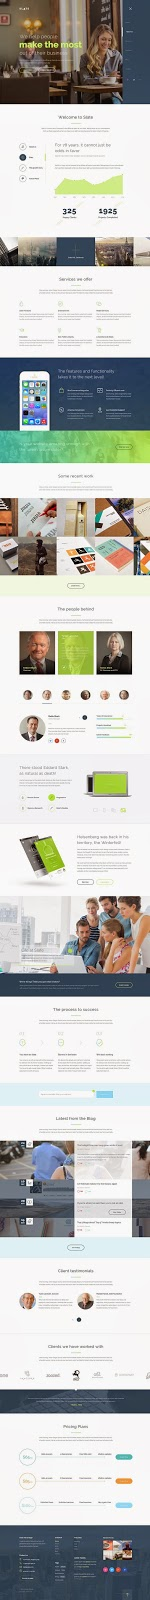 Slate A Real Multipurpose Corporate Template